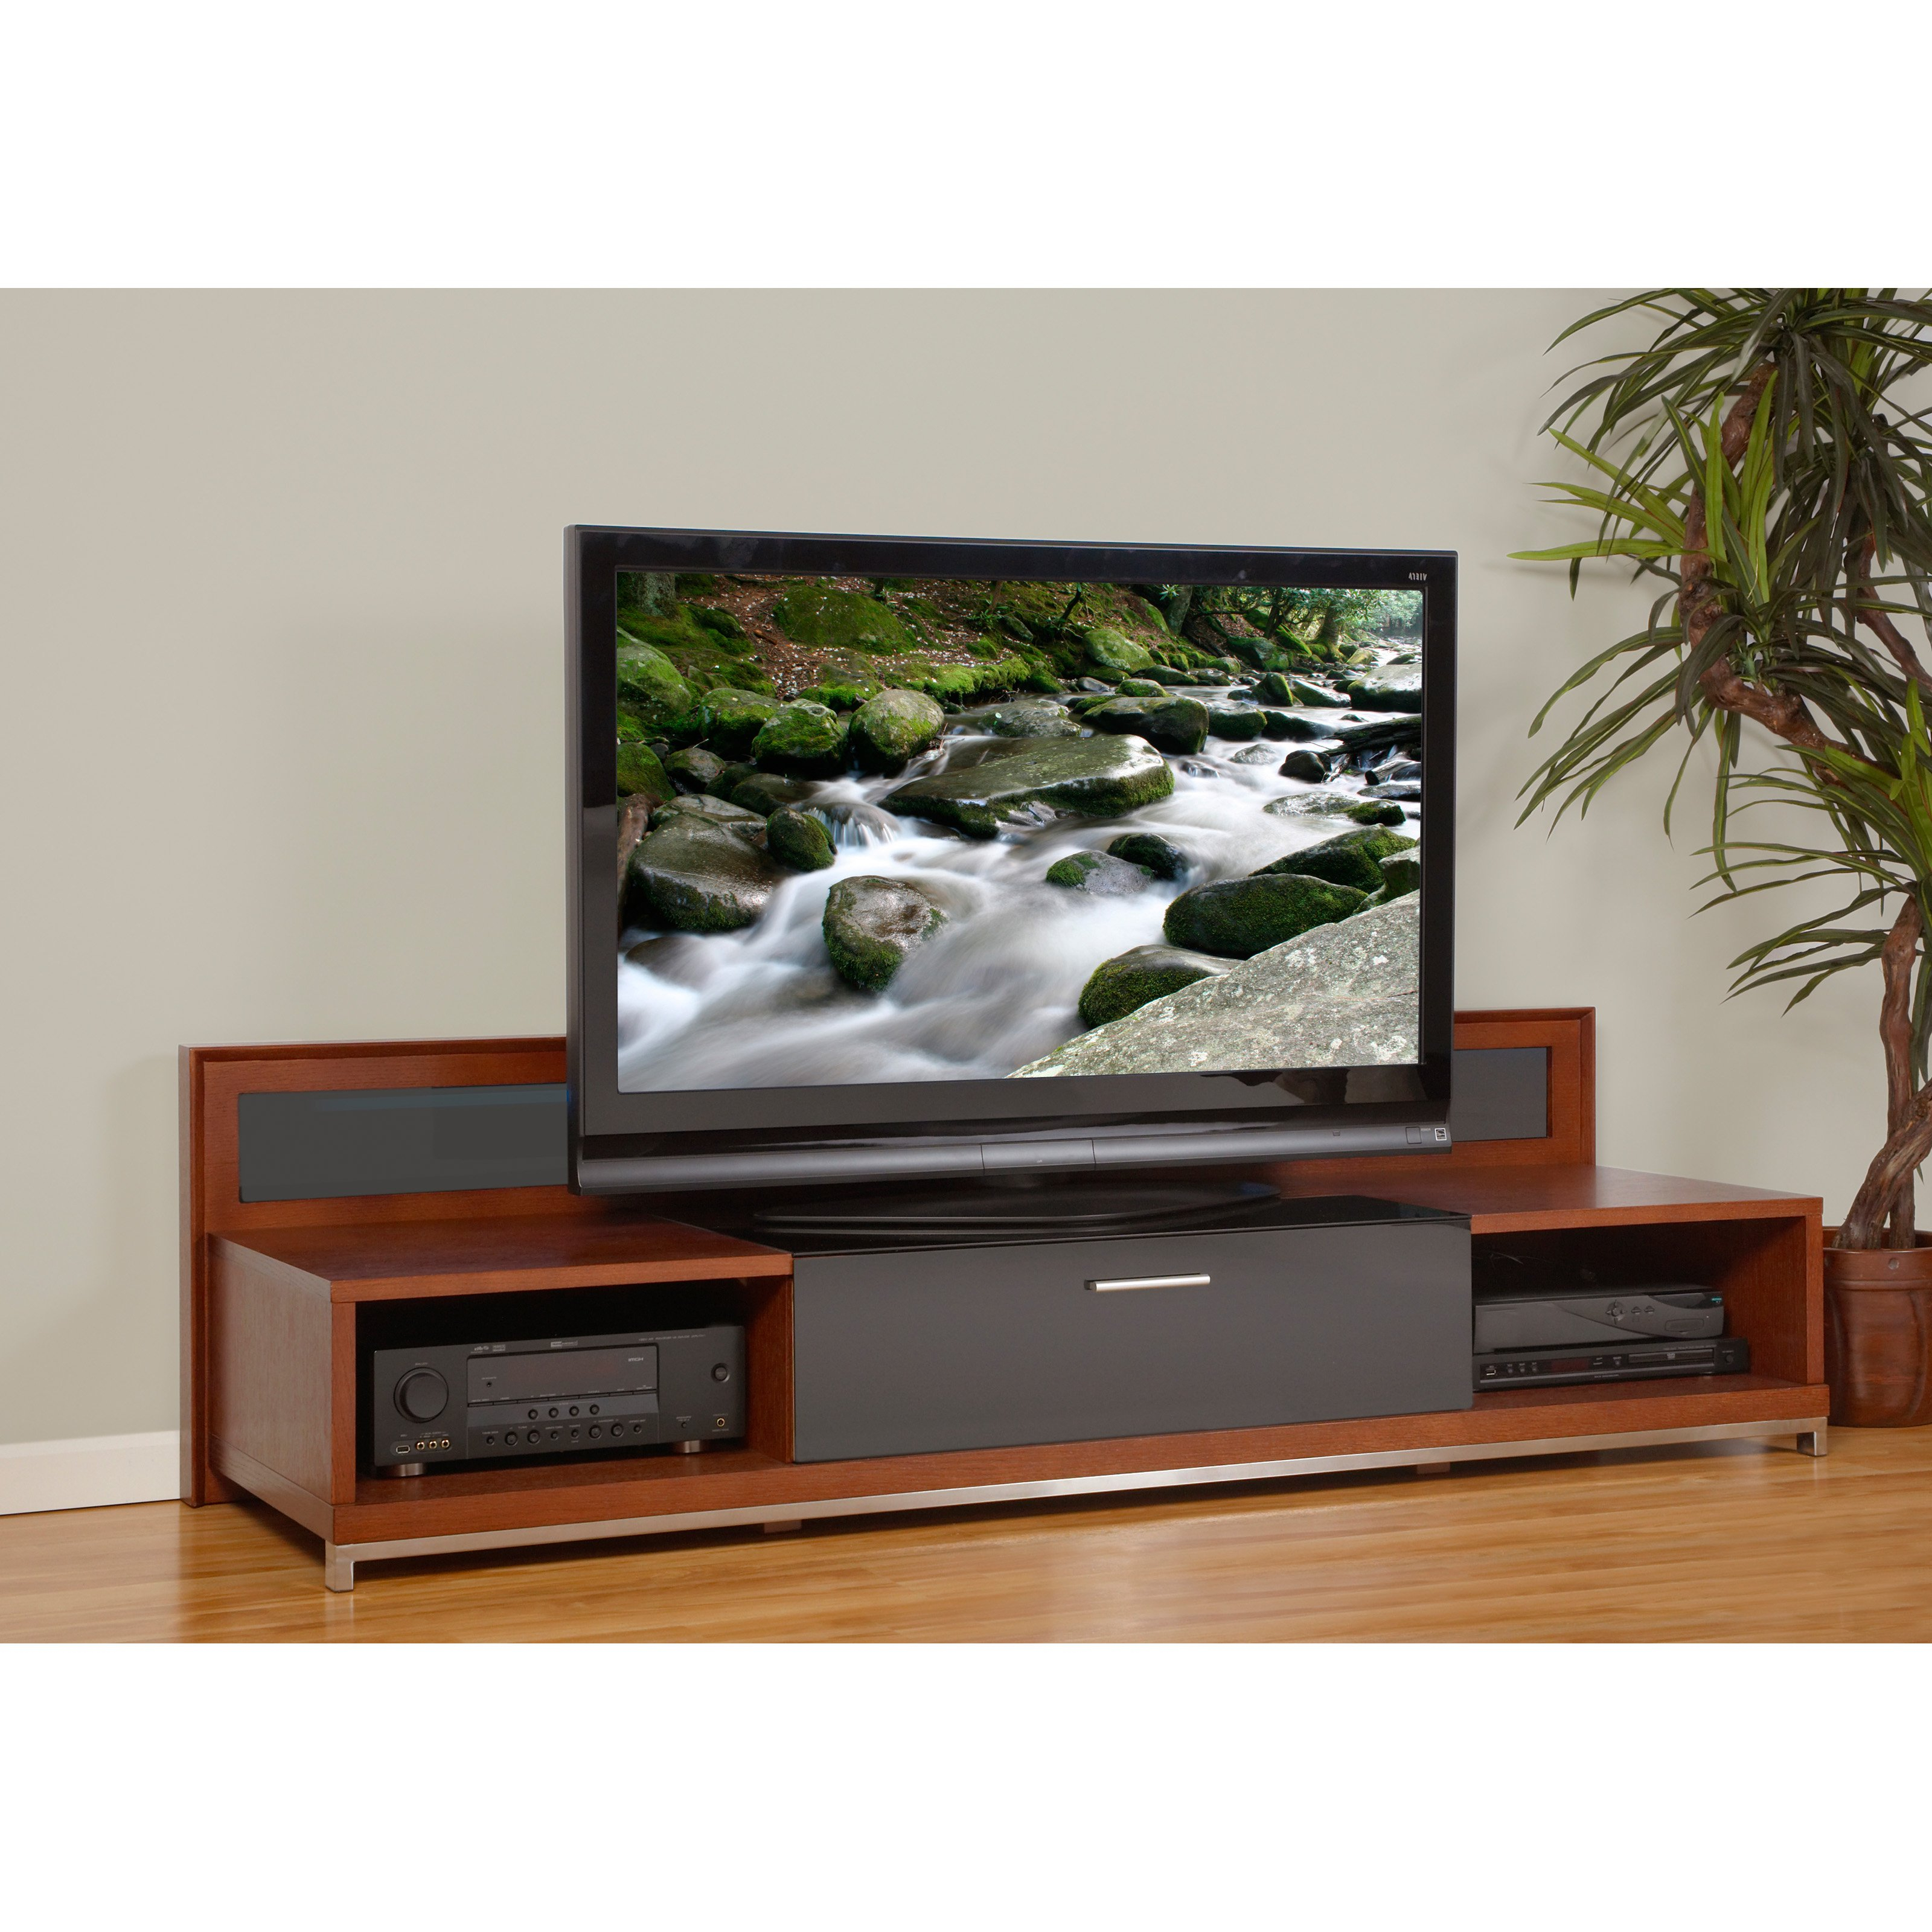 Plateau Valencia 79 Inch Tv Stand In Walnut – Walmart Intended For Preferred 80 Inch Tv Stands (View 16 of 20)